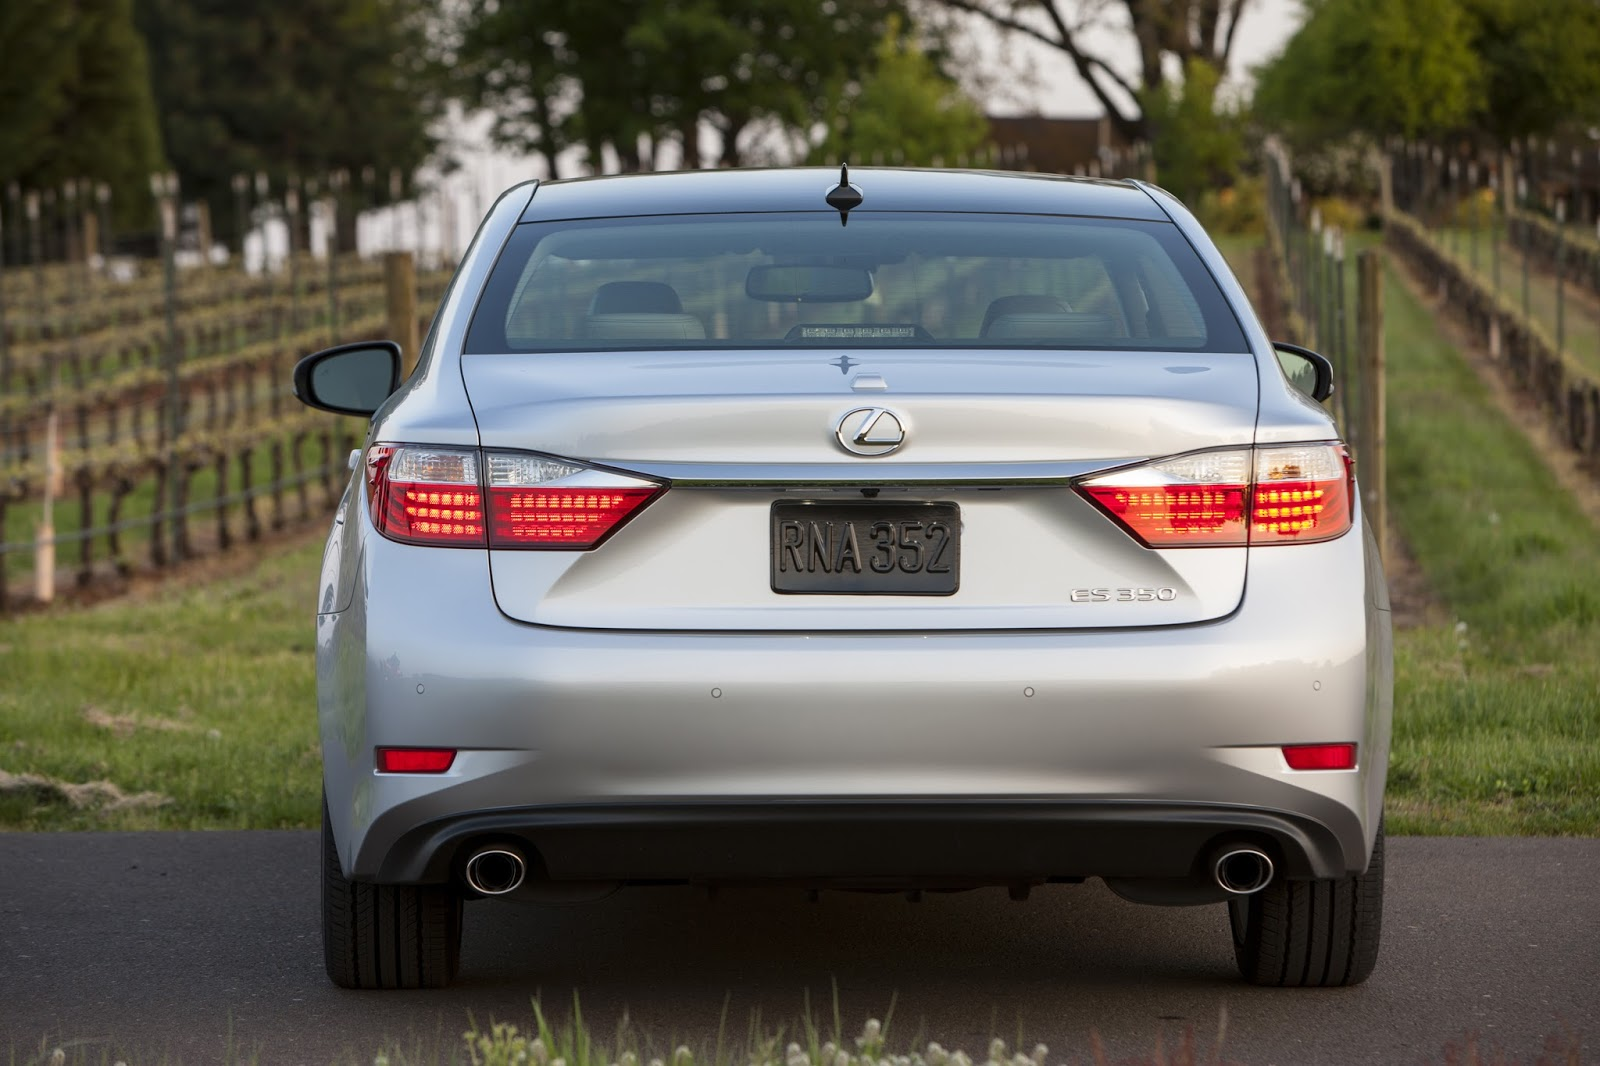 Lexus Provided The Vehicle, Insurance, And One Tank Of Gas For This Review.  Paul Lombardo At Metro Lexus Provided A Vehicle For A Follow Up Test Drive.